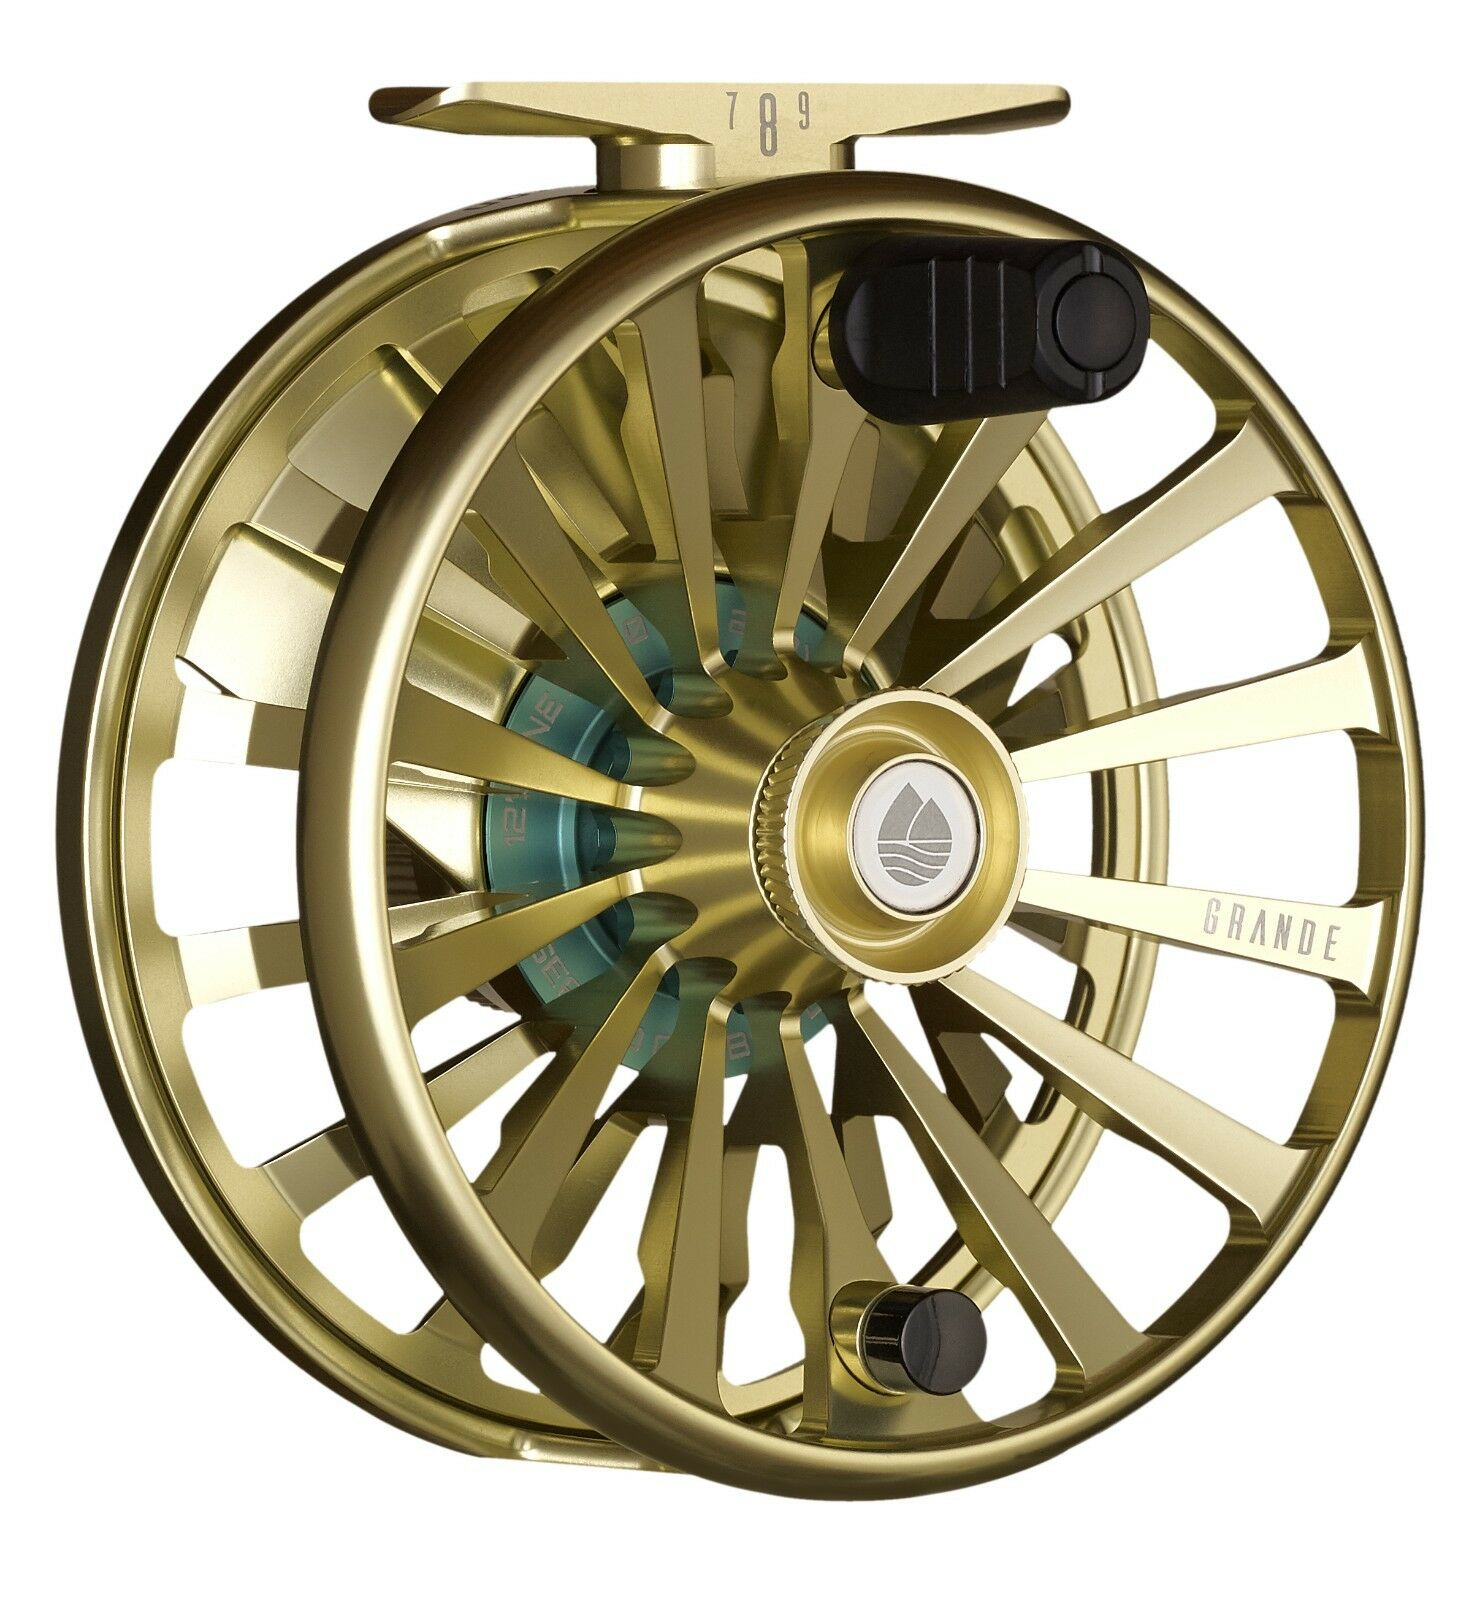 Redington Grande Fly Reel - Size 5 6 7, color  Champagne - New  shop now